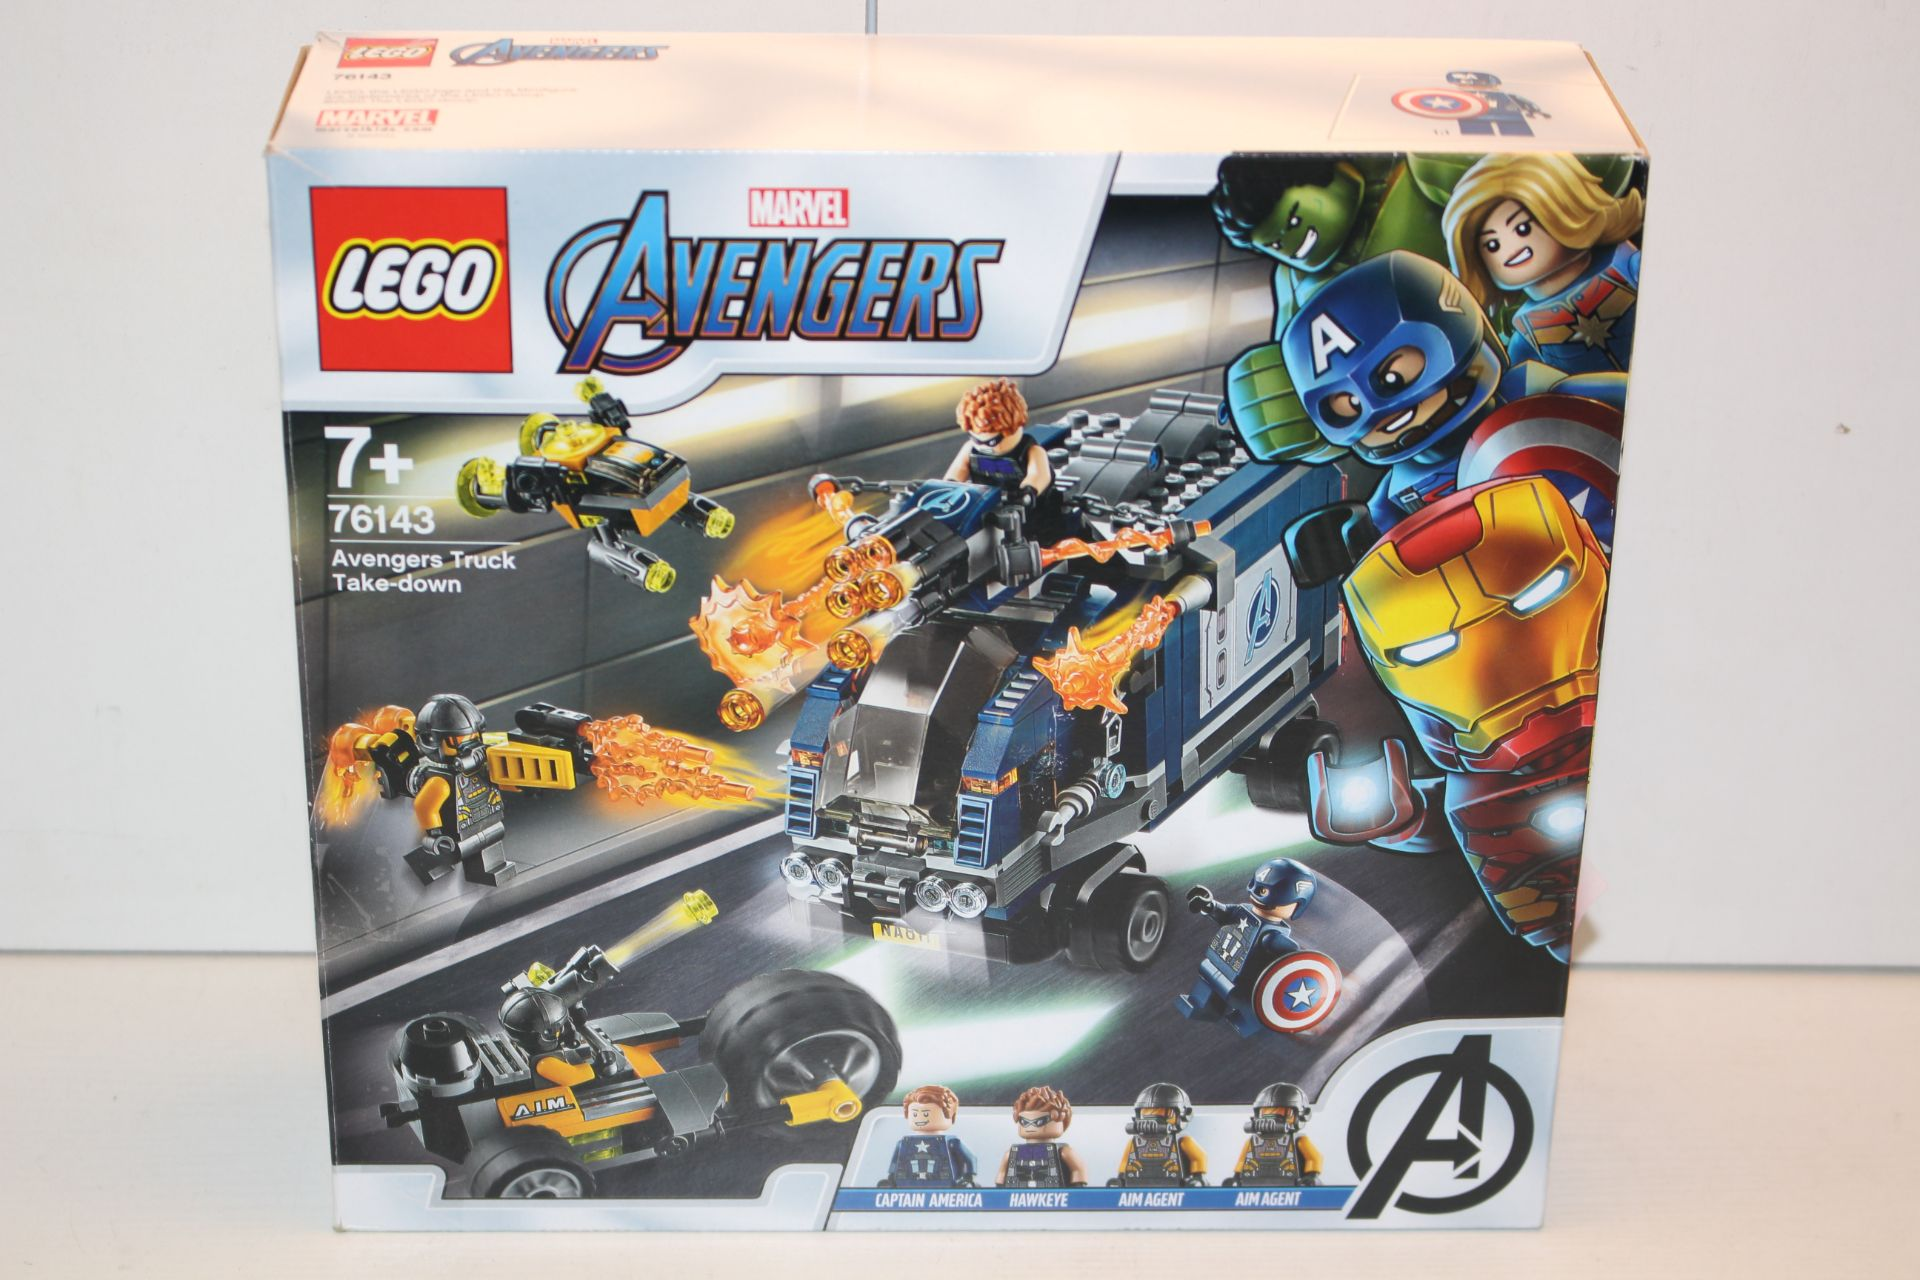 BOXED LEGO MARVEL AVENGERS 76143 RRP £34.99Condition ReportAppraisal Available on Request- All Items